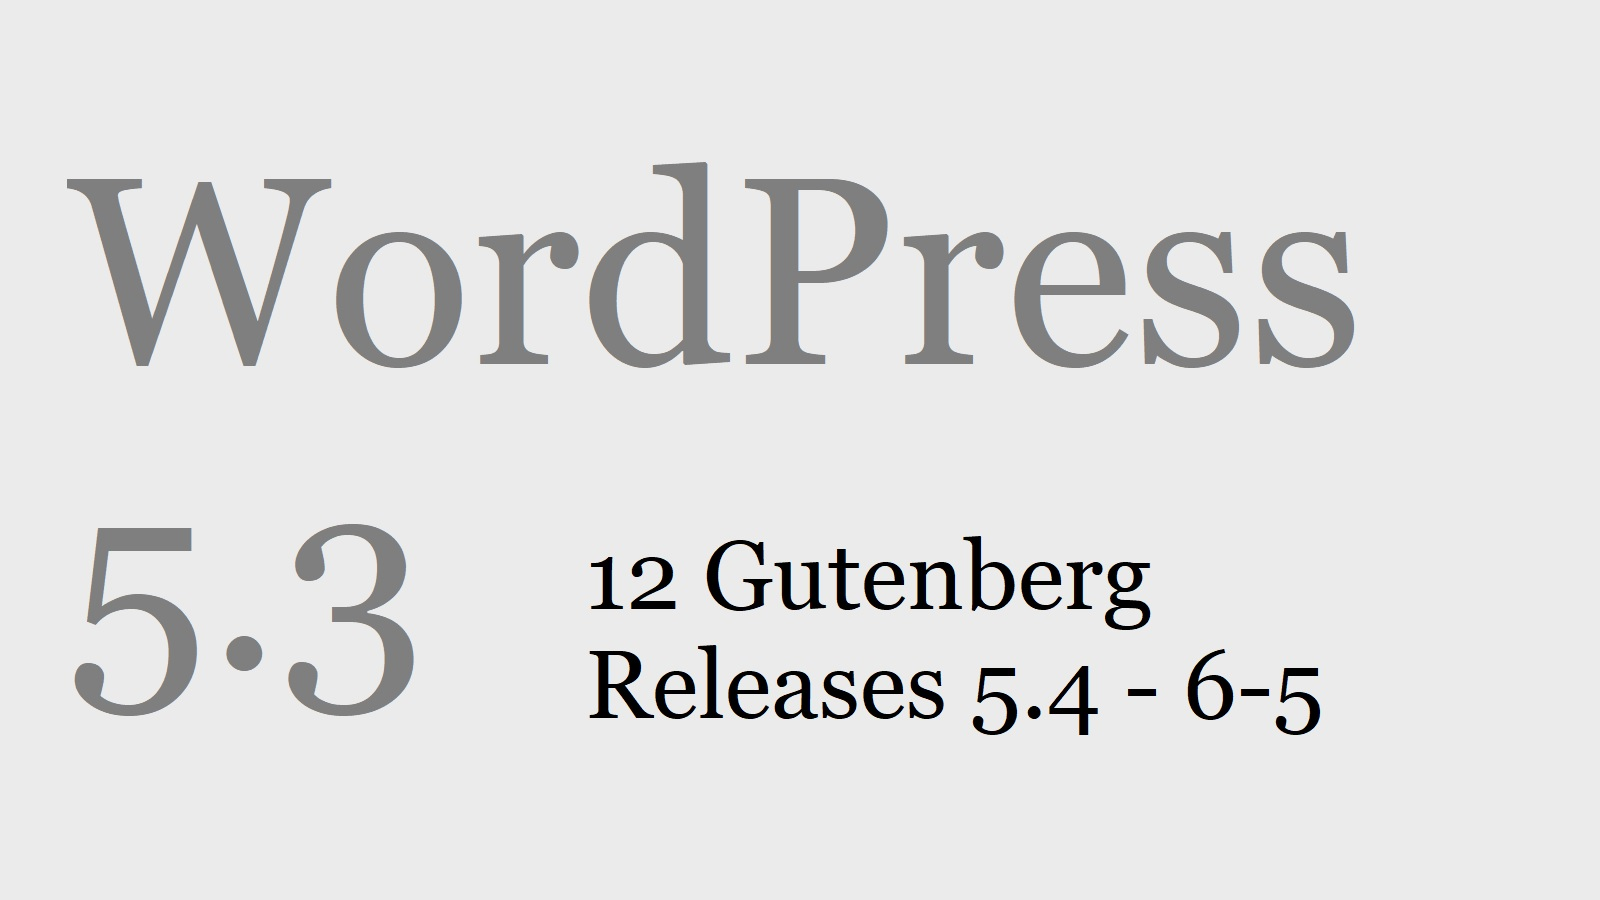 WordPress 5.3 - 12 Gutenberg Releases